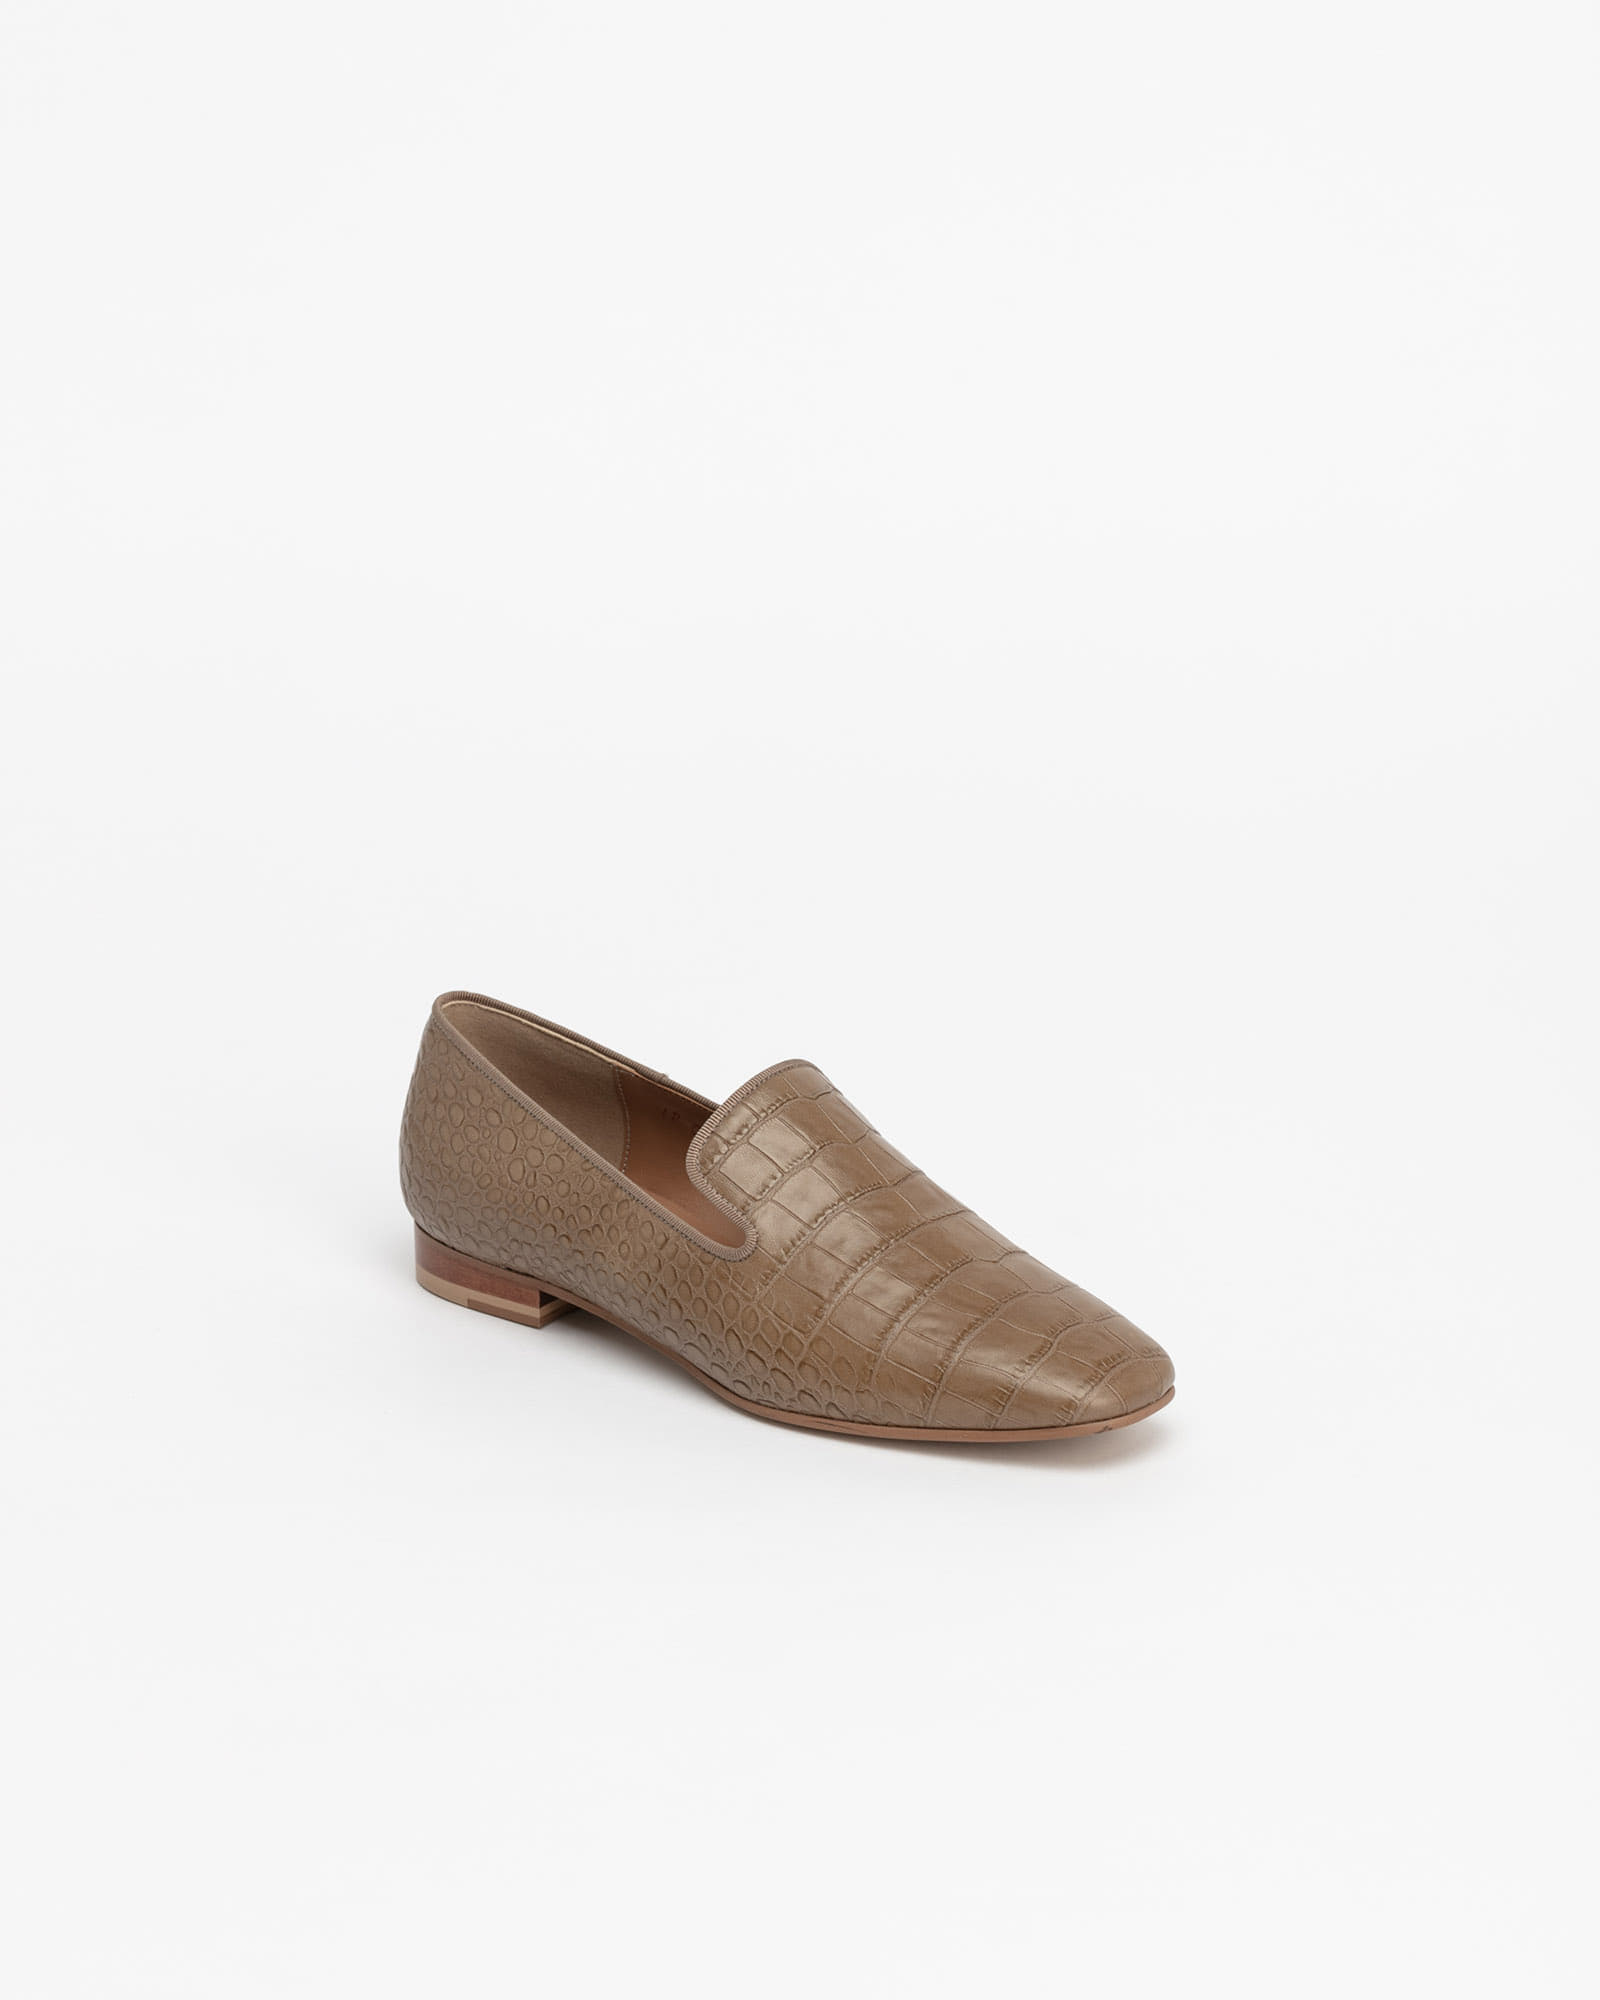 Wynne Slip-on Loafers in Beige Croco Print